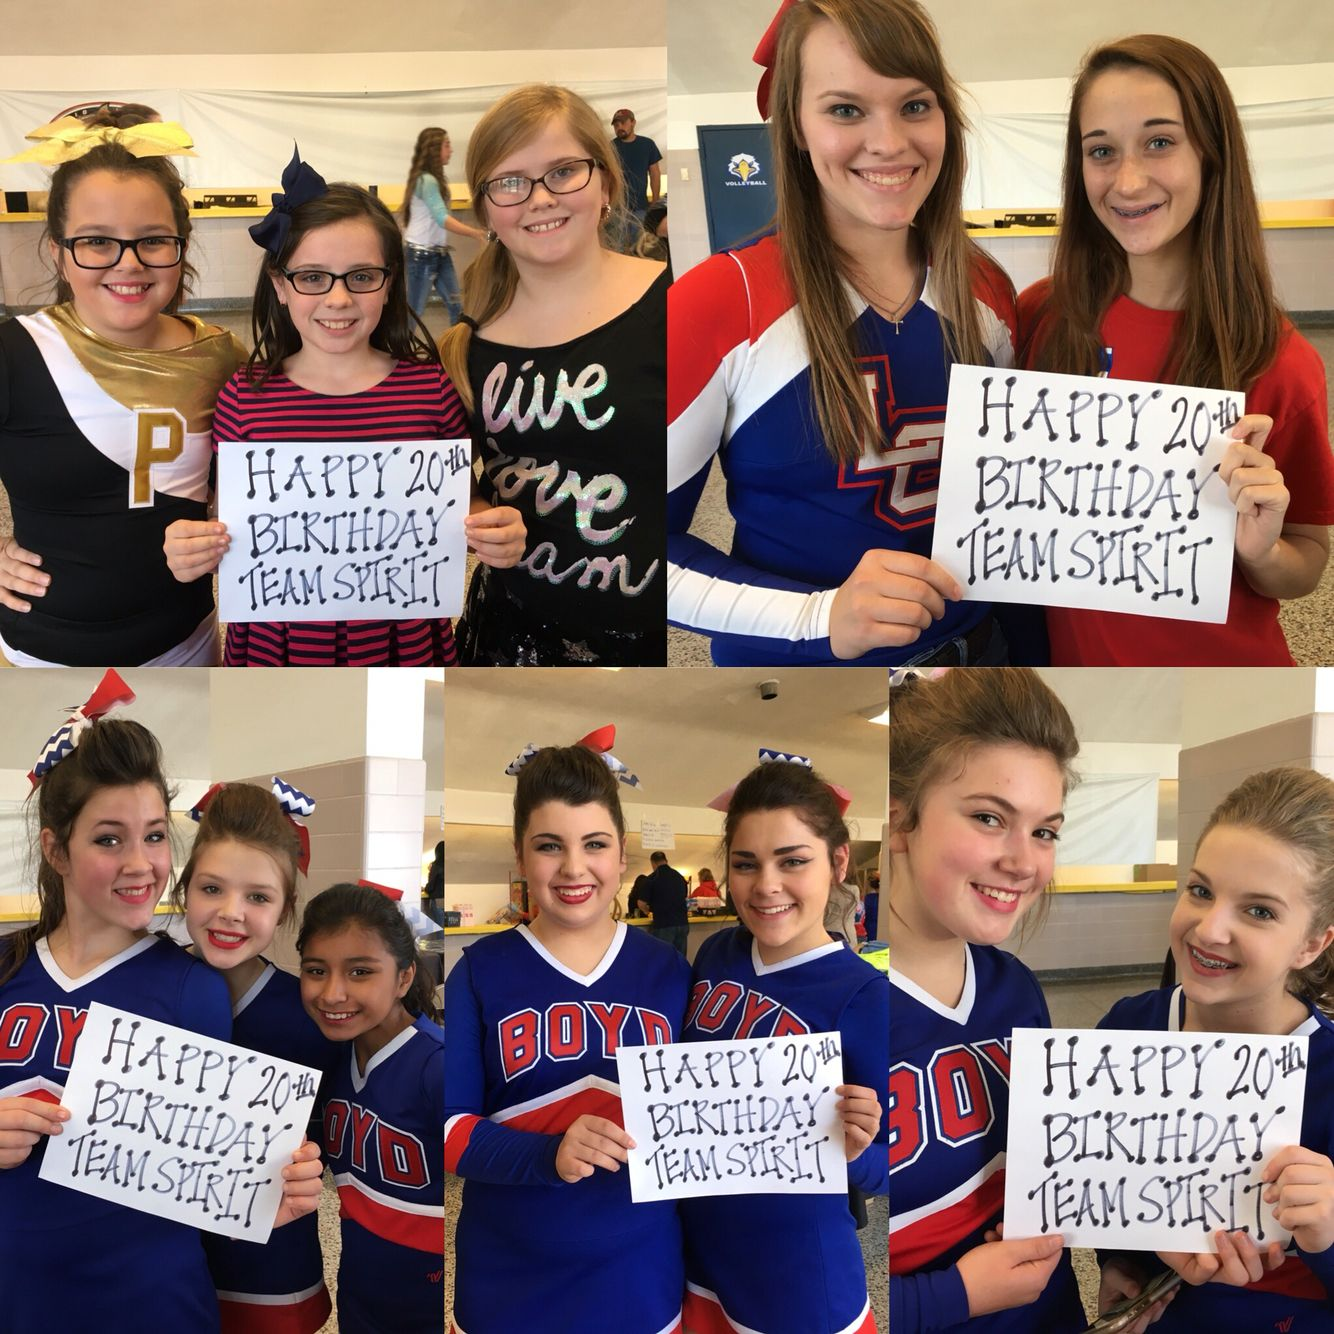 We LOVE Our CUSTOMERS! Image By The Team Spirit Shop, Inc